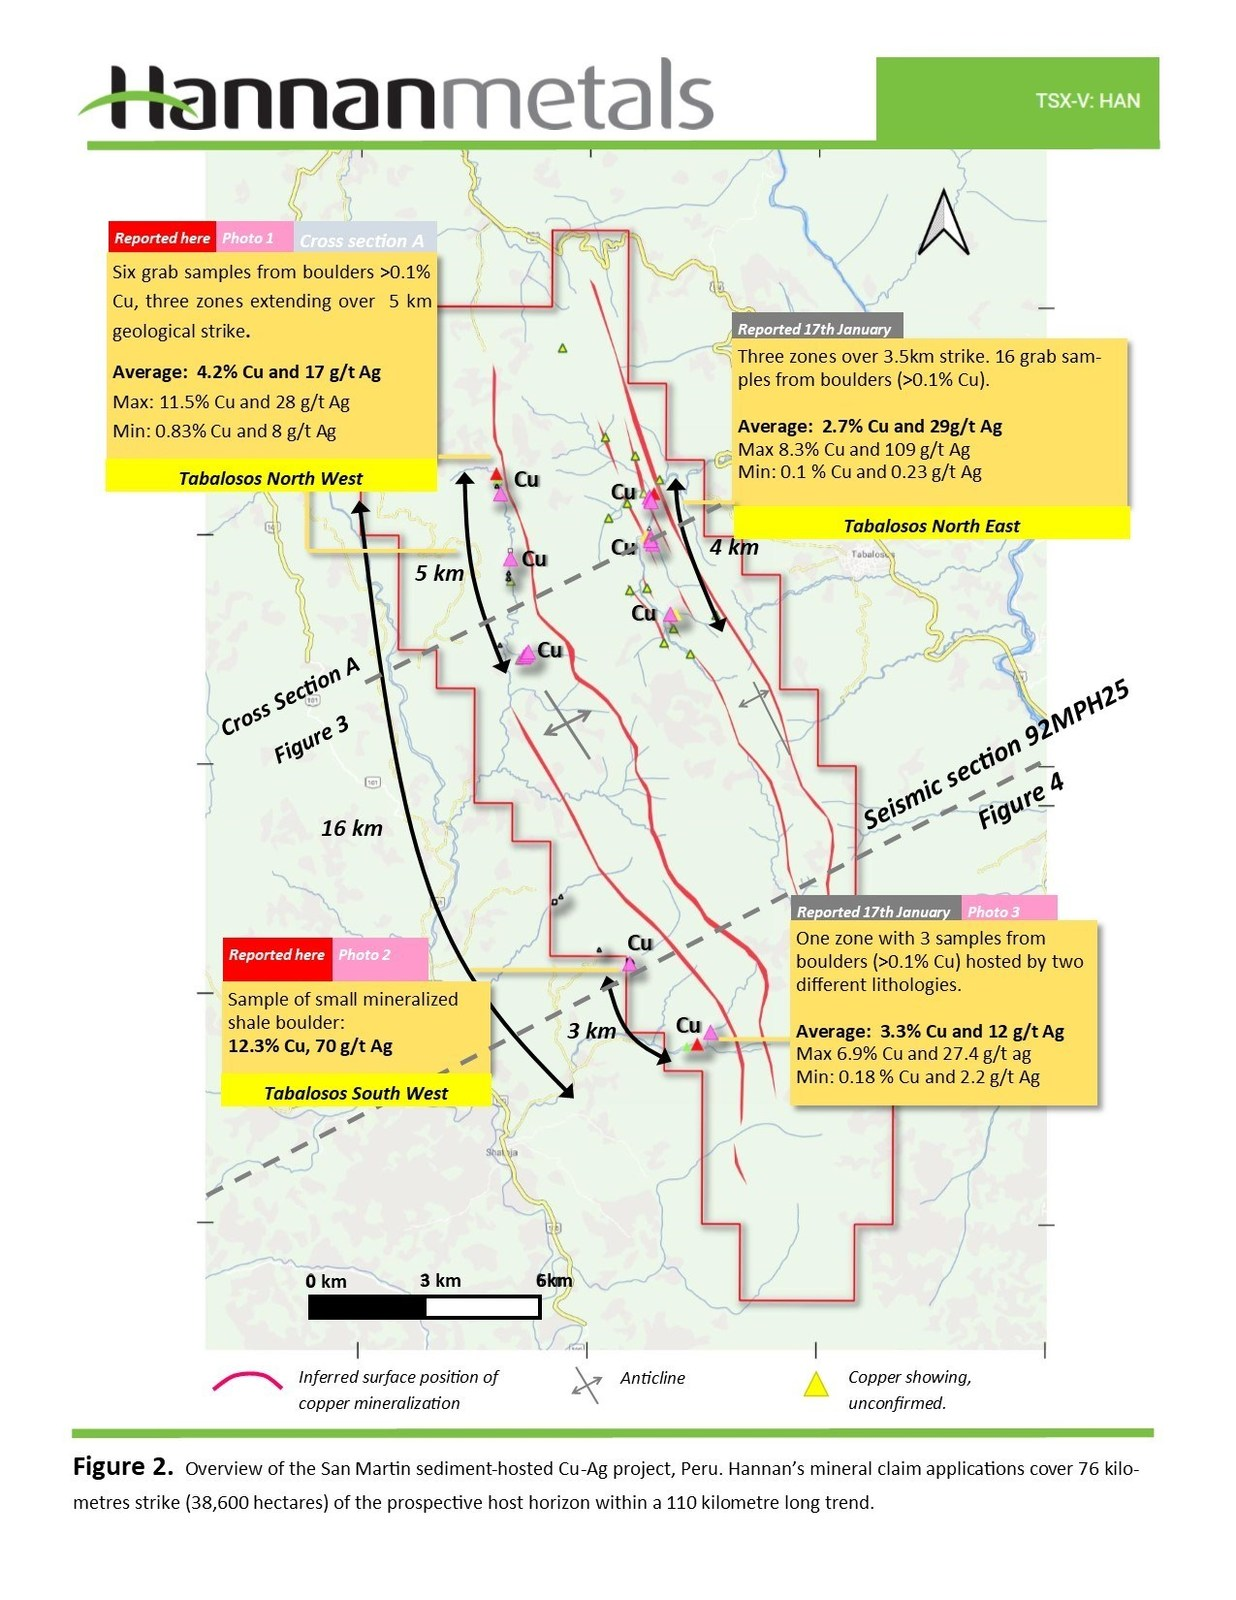 Figure 2. Overview of the San Martin sediment-hosted Cu-Ag project, Peru. Hannan's mineral claim applications now cover 76 kilometres strike of the prospective host horizon within a 110 kilometre long trend.